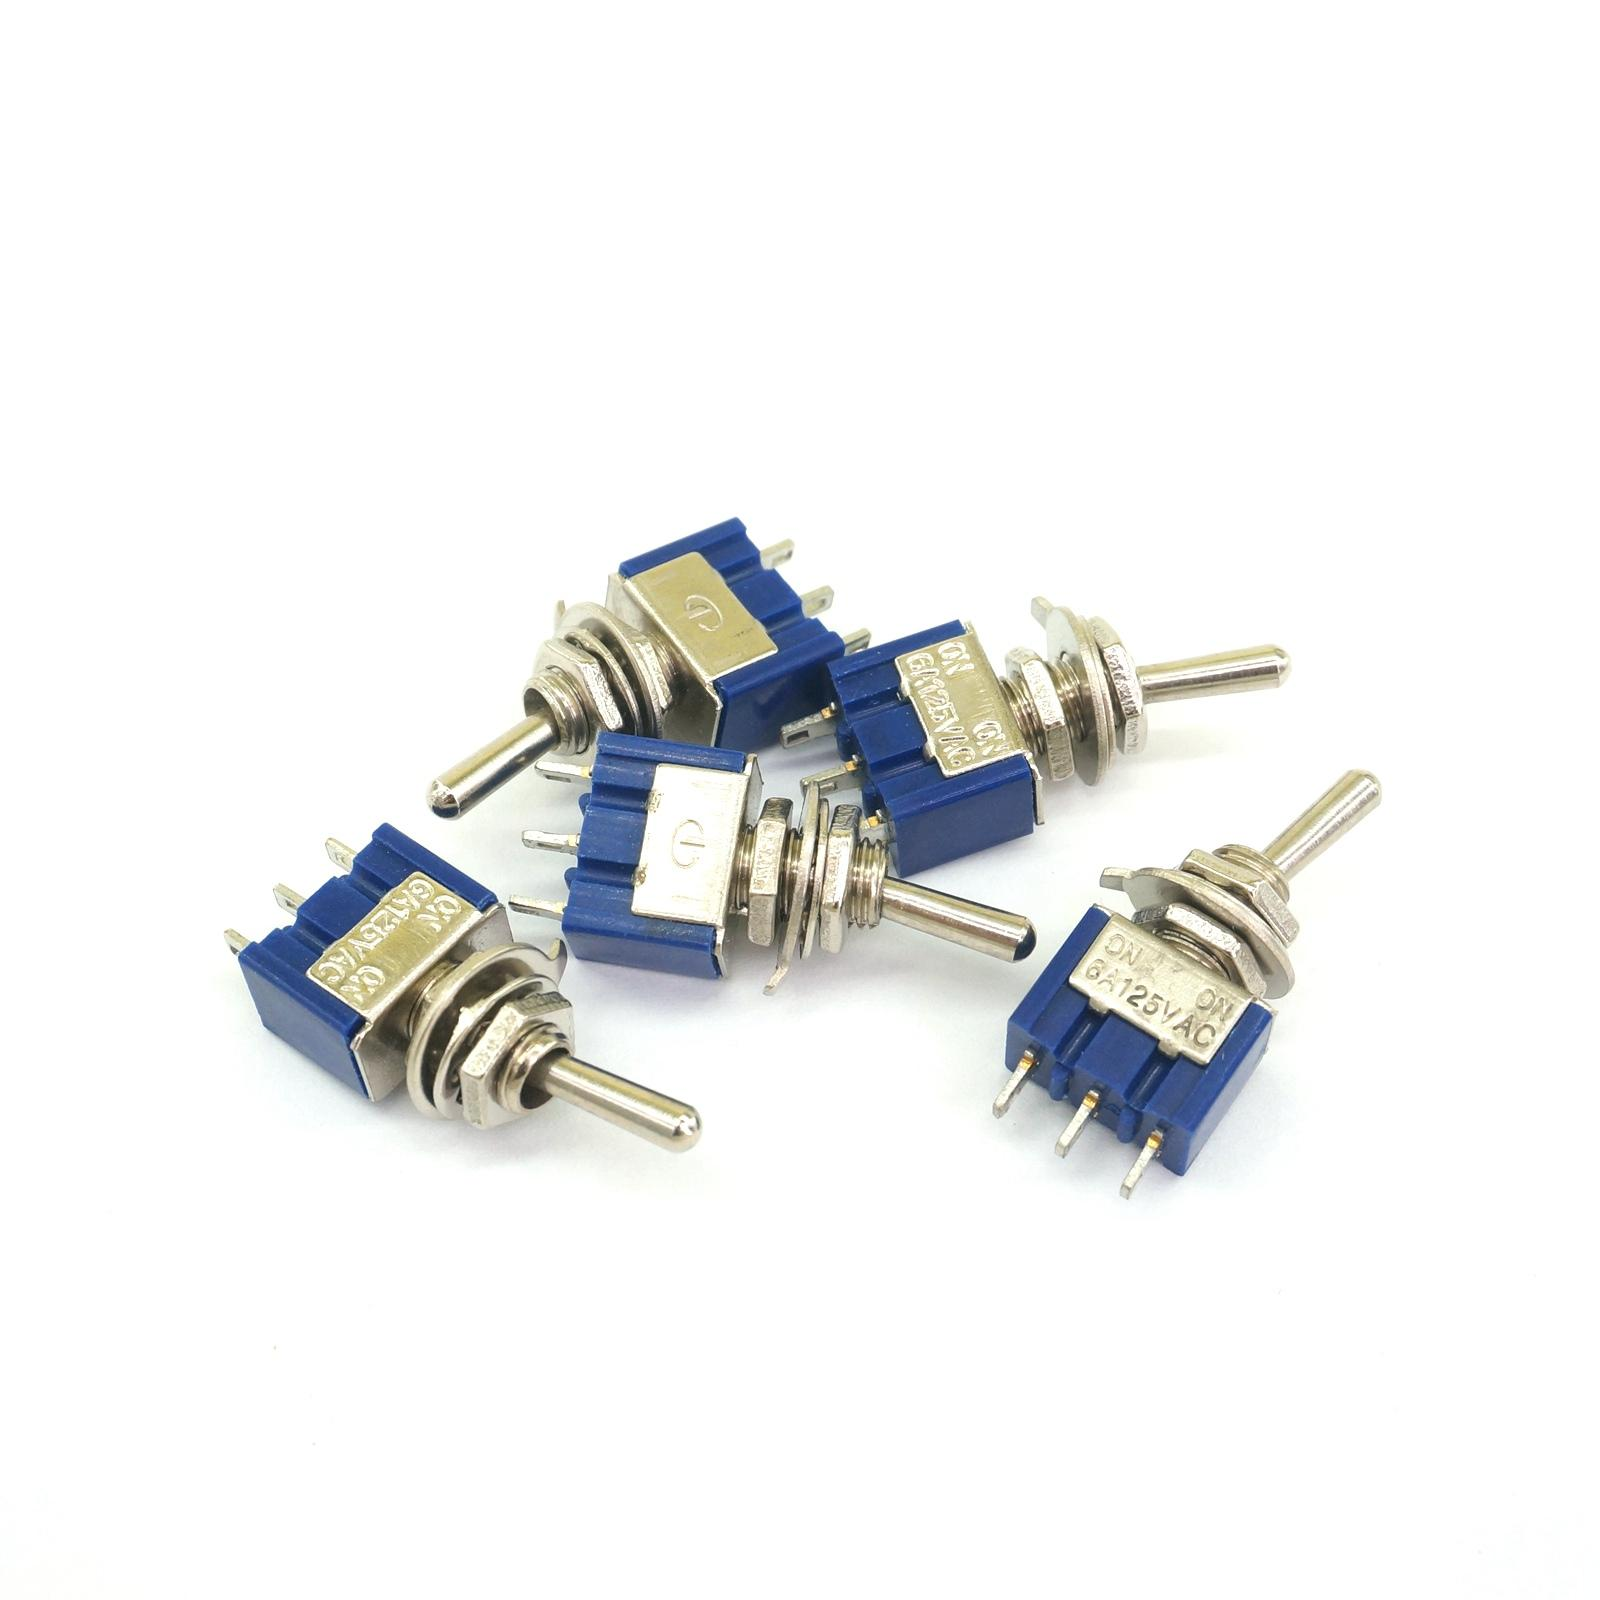 medium resolution of 5pcs mts 102 3 pin single pole double throw on on 6a 125vac mini toggle switch